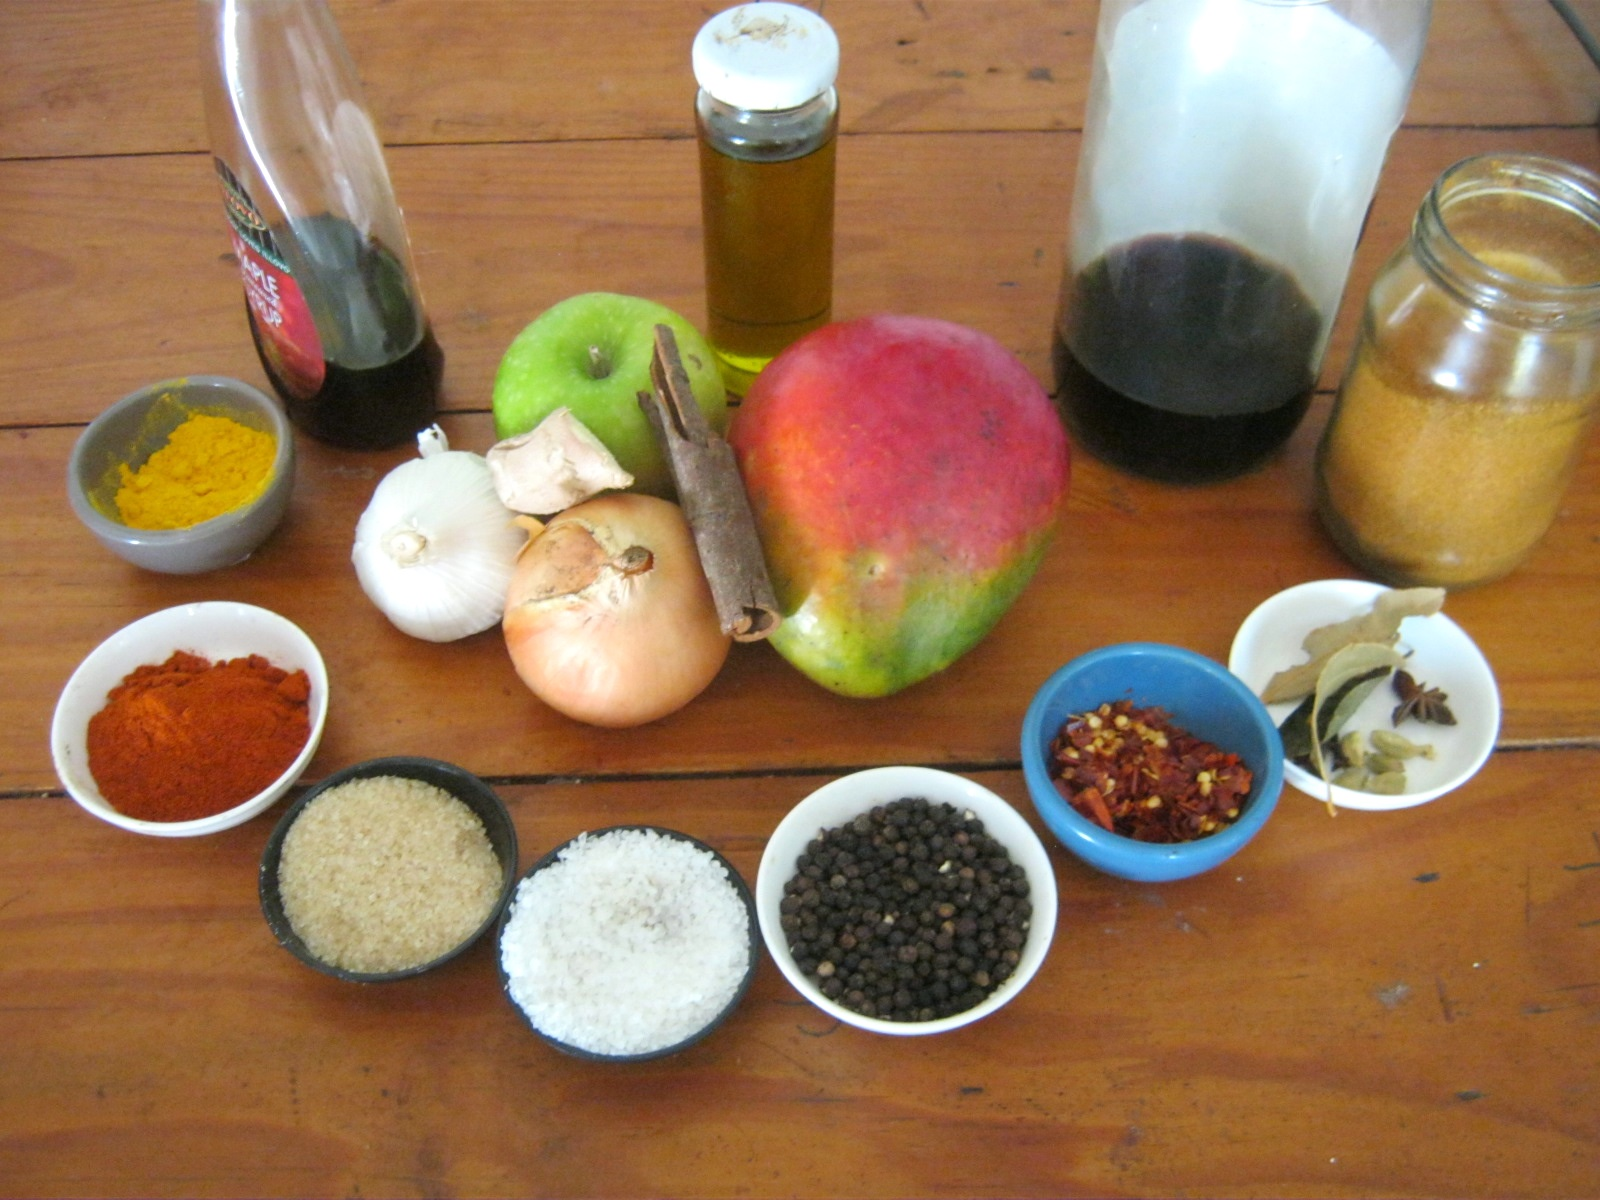 Ingredients for homemade mango chutney